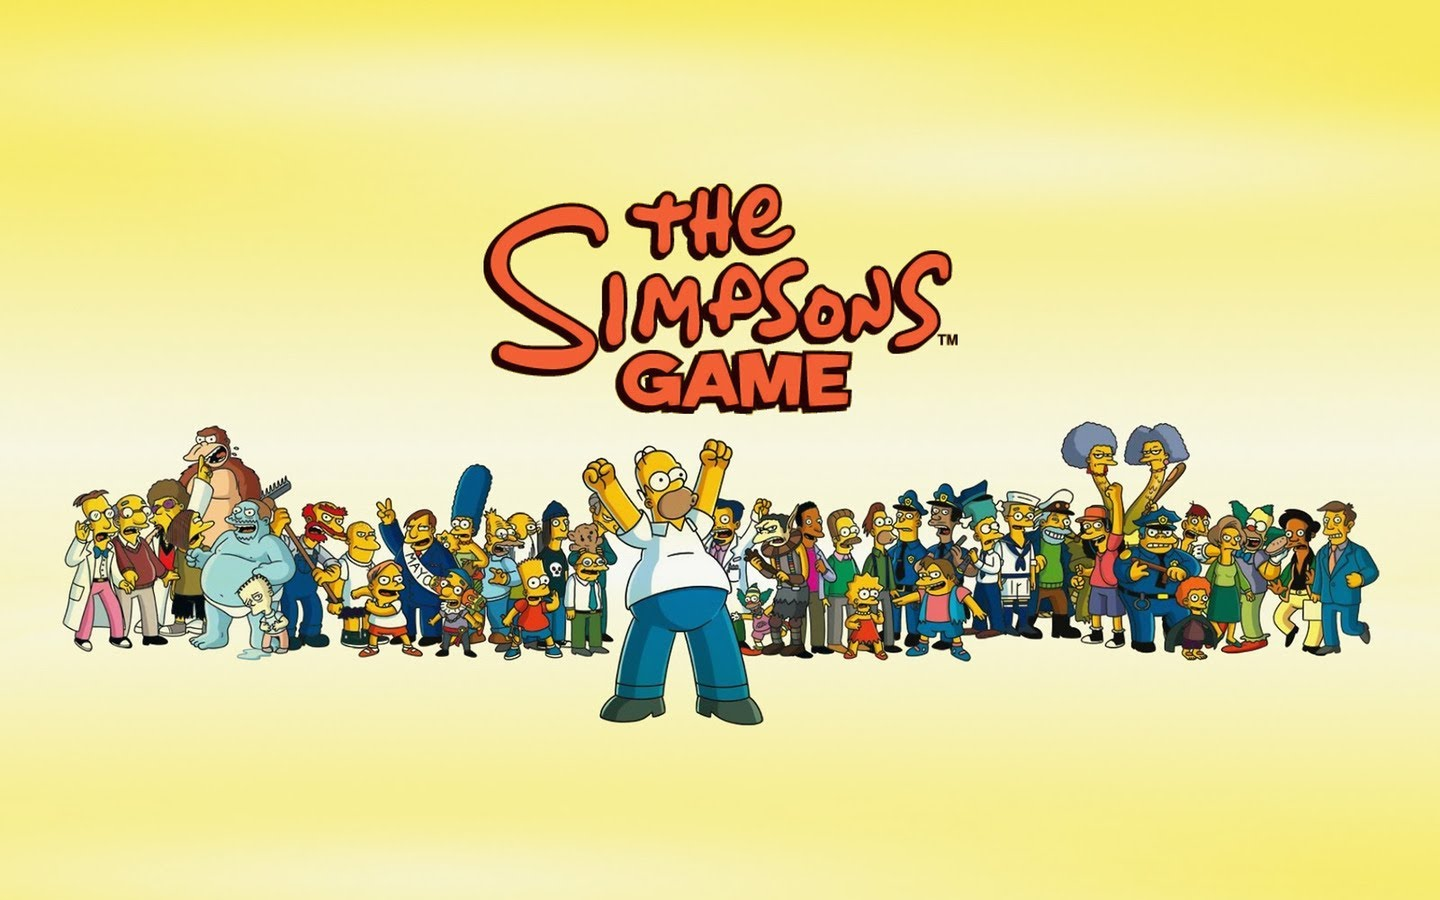 The Simpsons Movie Wallpaper Hd Simpsons Game Original Soundtrack 334856 Hd Wallpaper Backgrounds Download